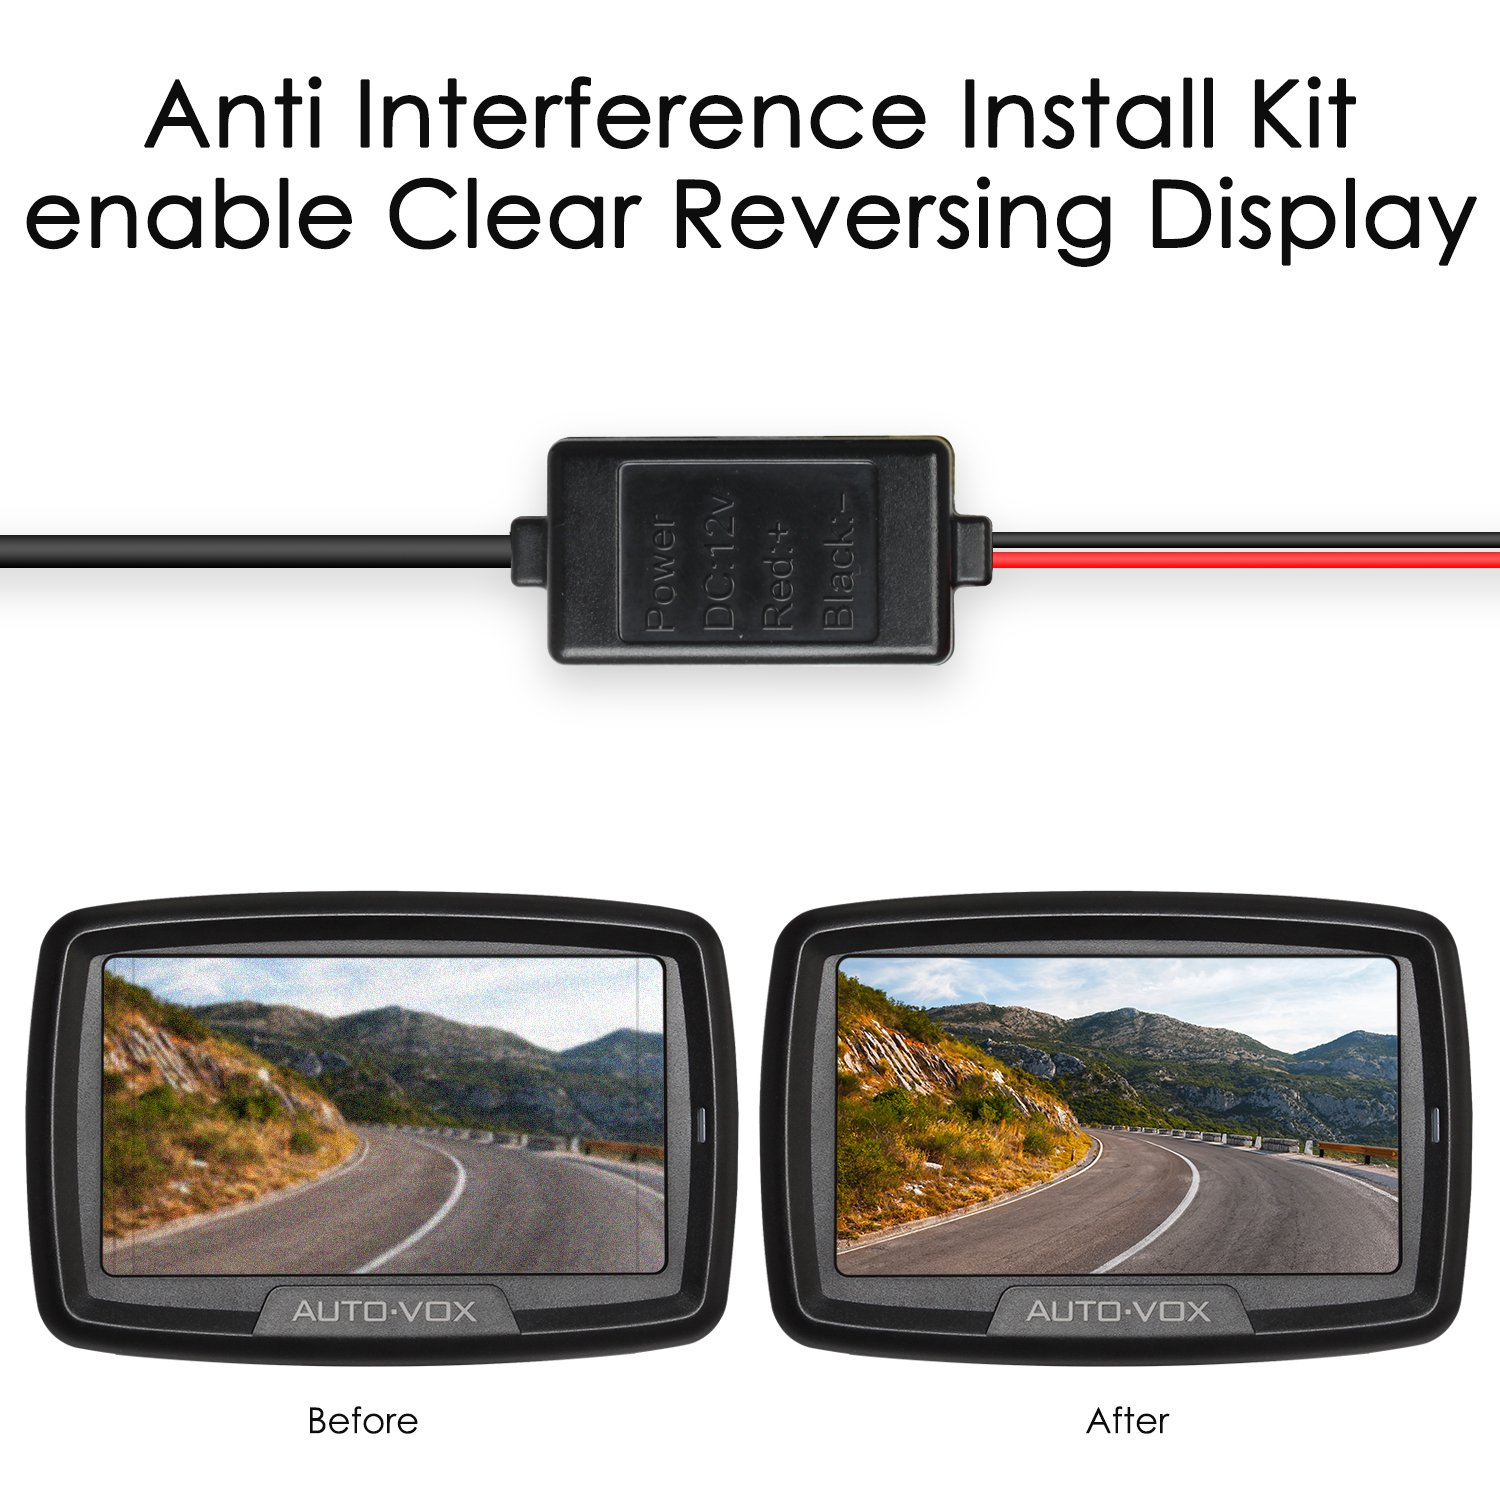 AUTO-VOX Backup Camera Anti Interference Install Kit Parking Camera 12V DC  Power Adapter Filter Rectifier for VW Dodge Audi BMW Benz -4 26ft